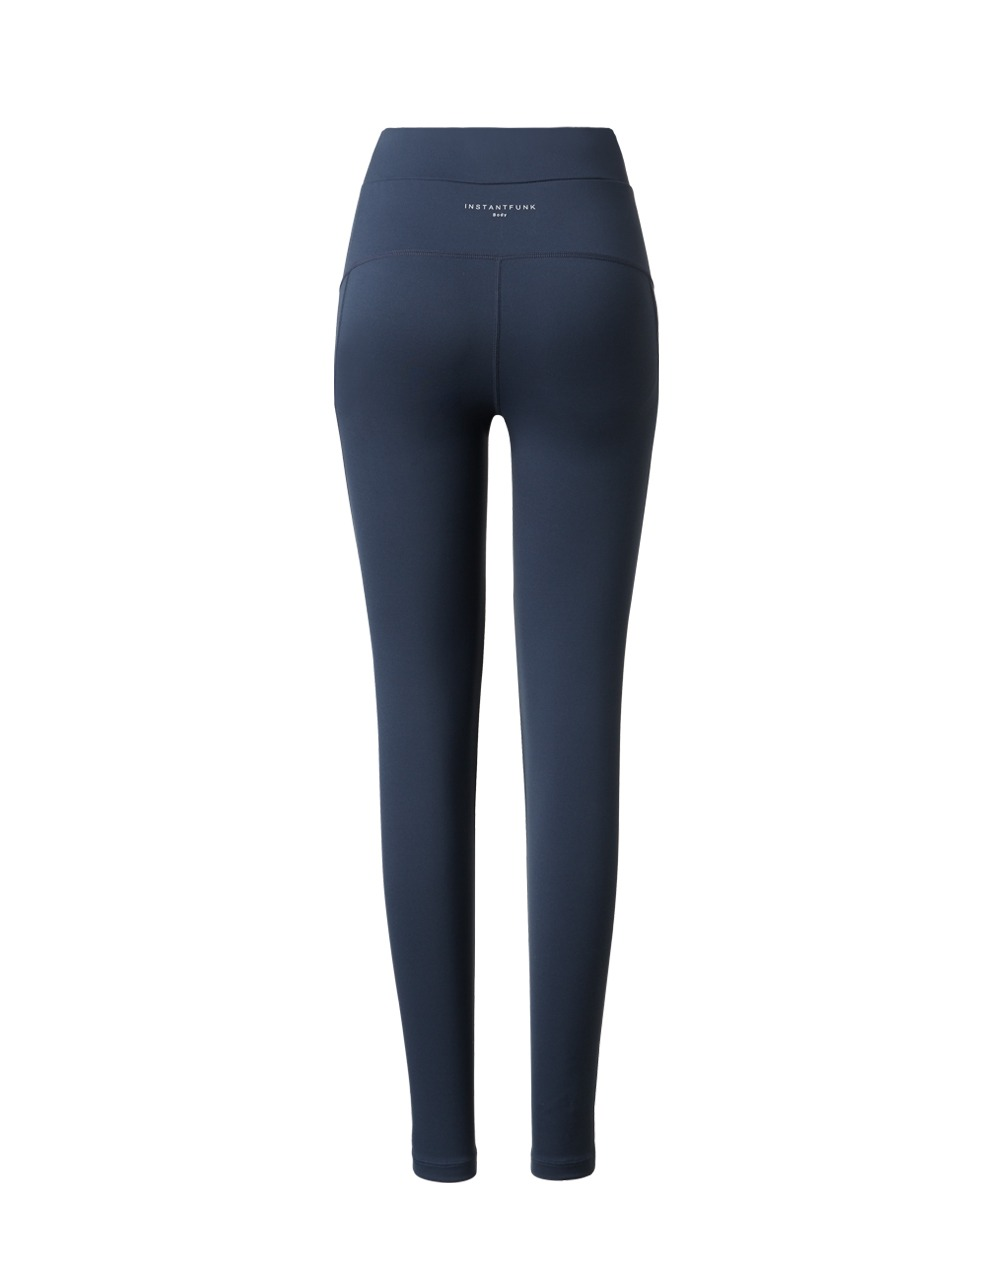 Volume Leggings 01 - Charcoal